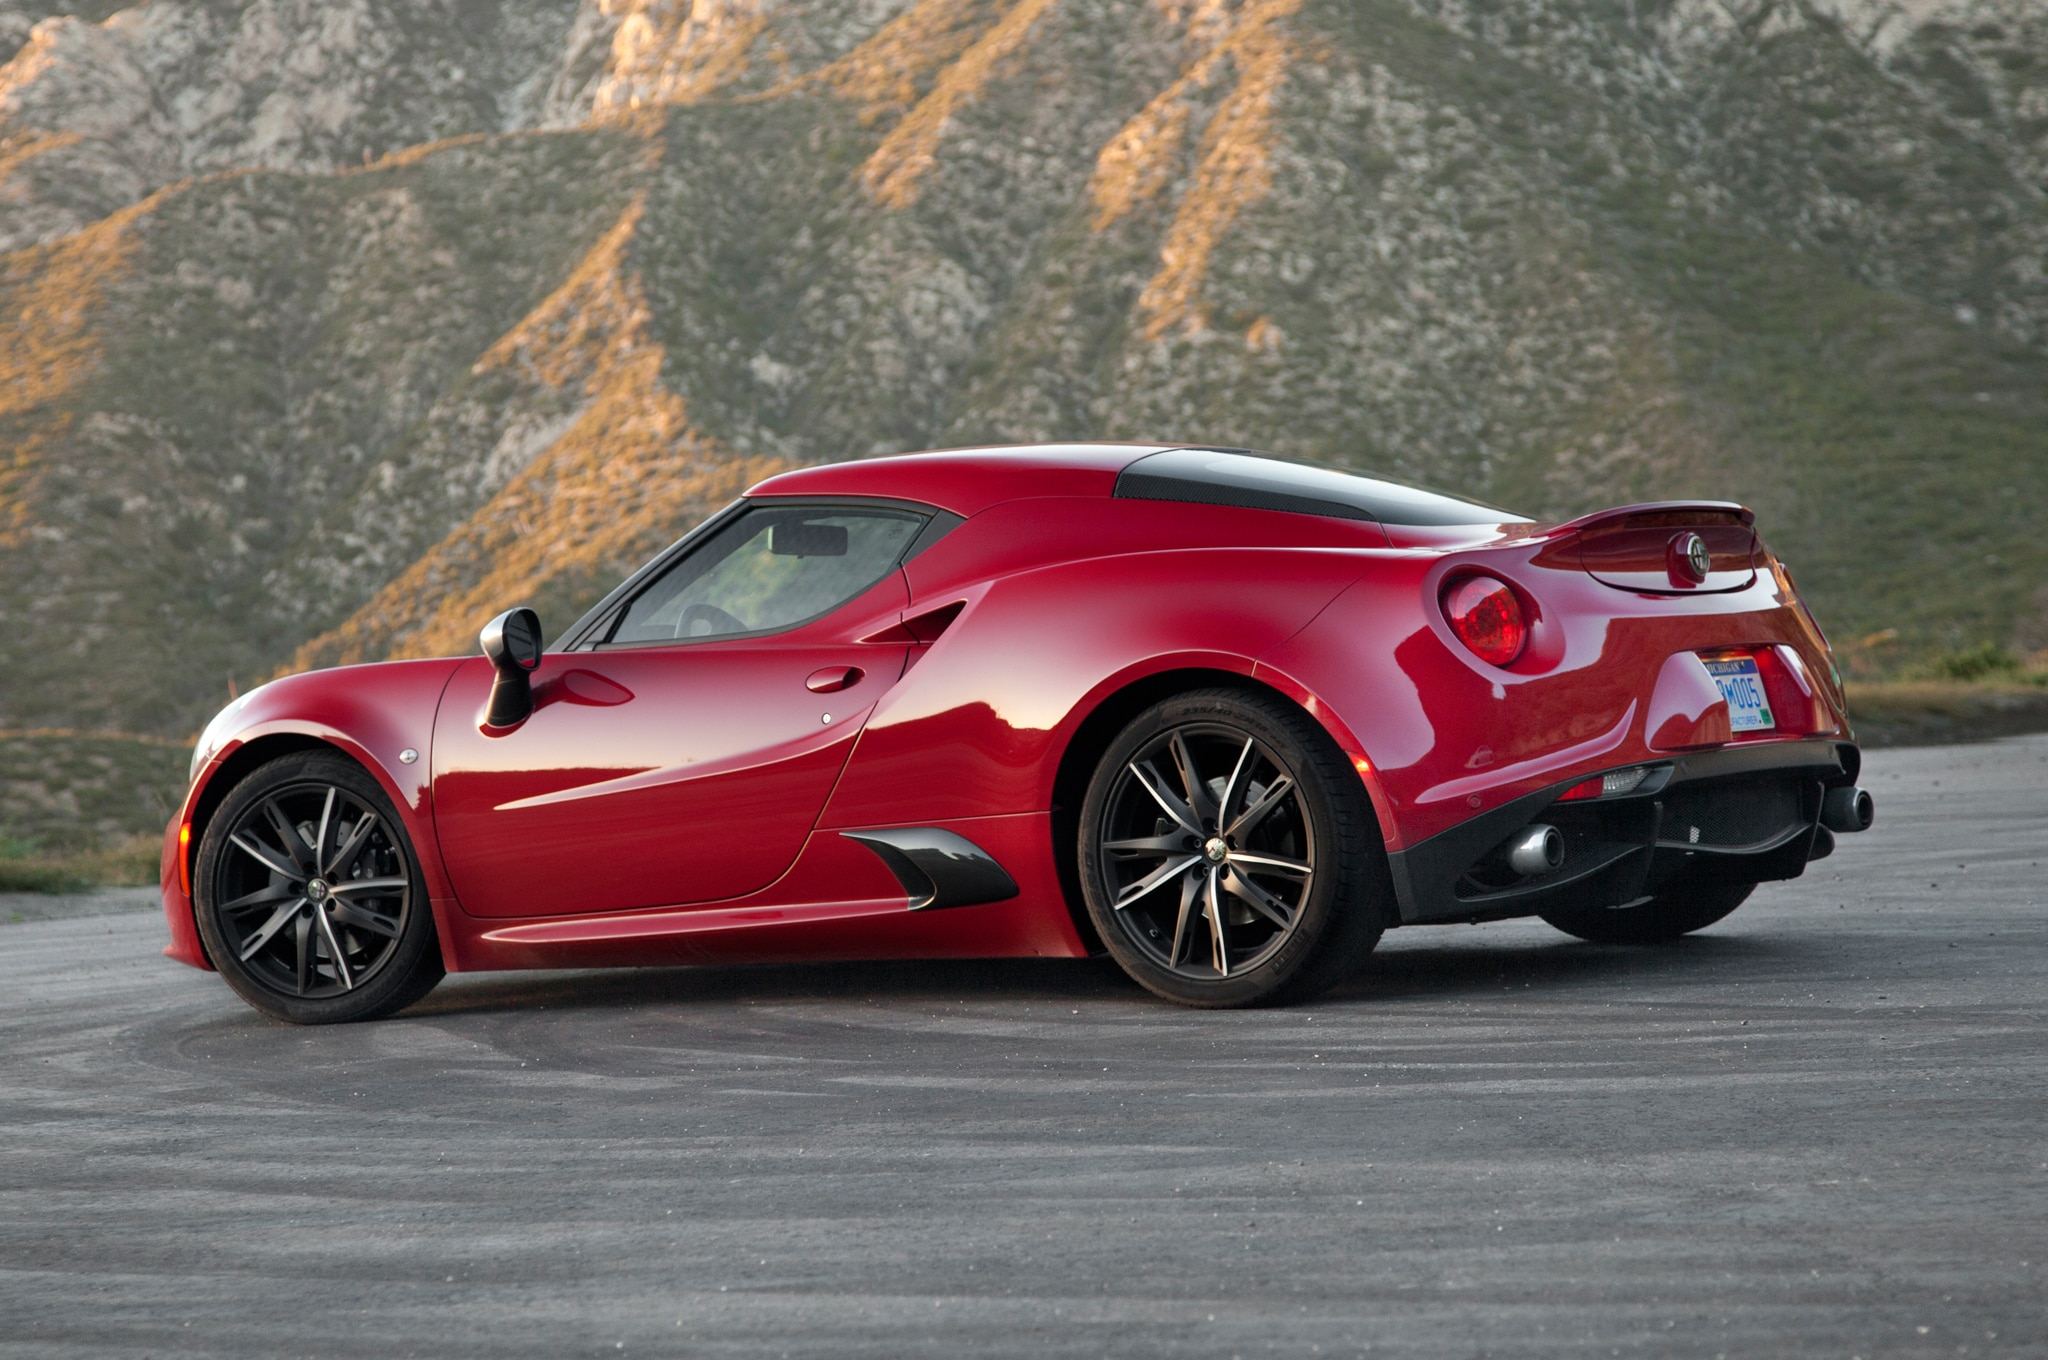 2015 Alfa Romeo 4C Coupe and Alfa Romeo 4C Spider – Four Seasons